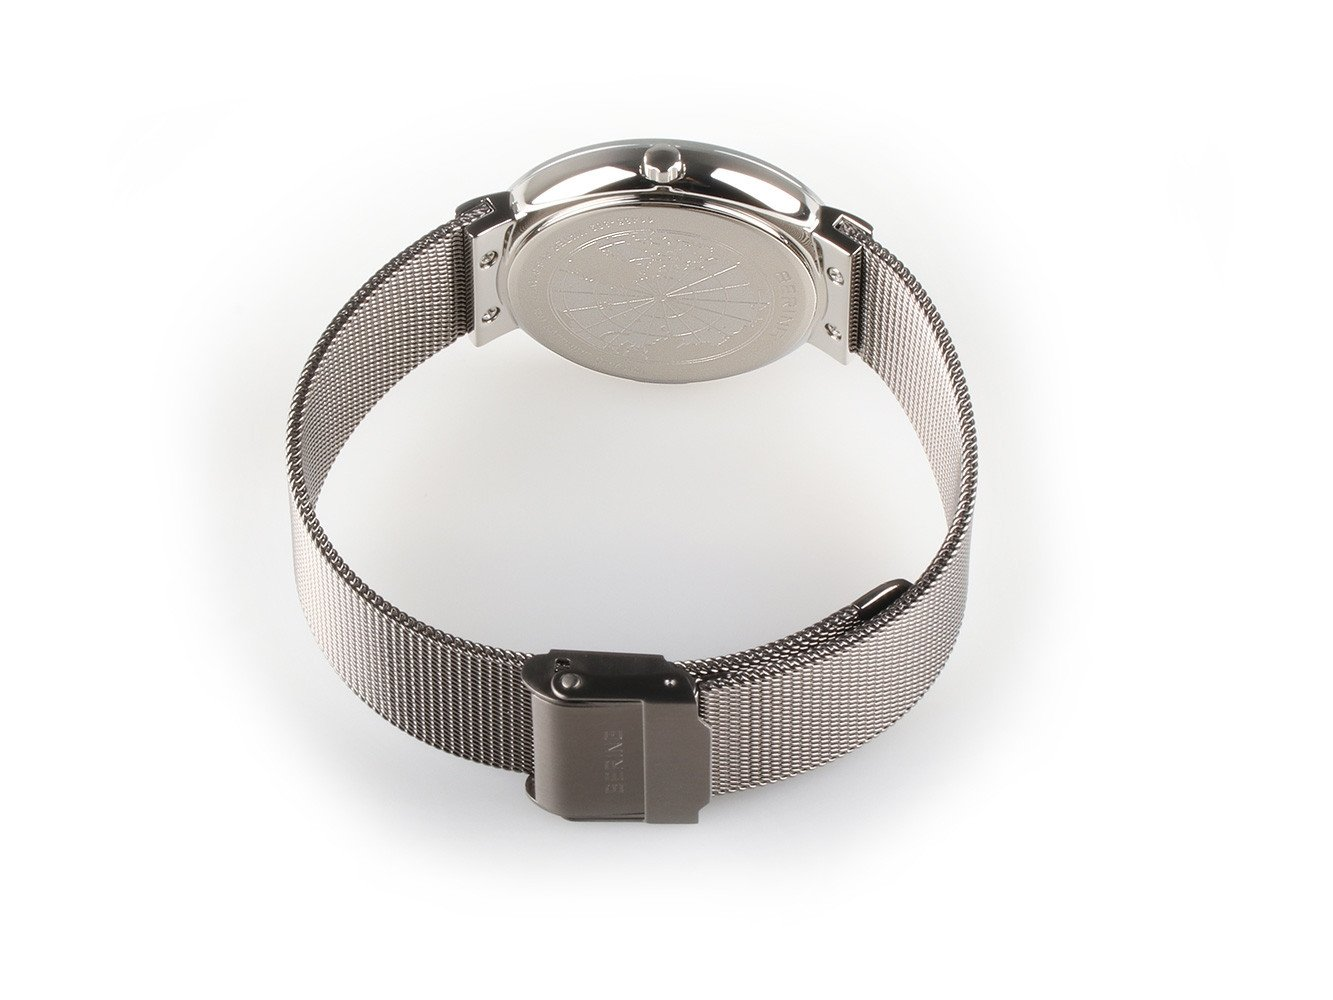 Bering 11435-389 Ceramic Damen 34mm 5ATM